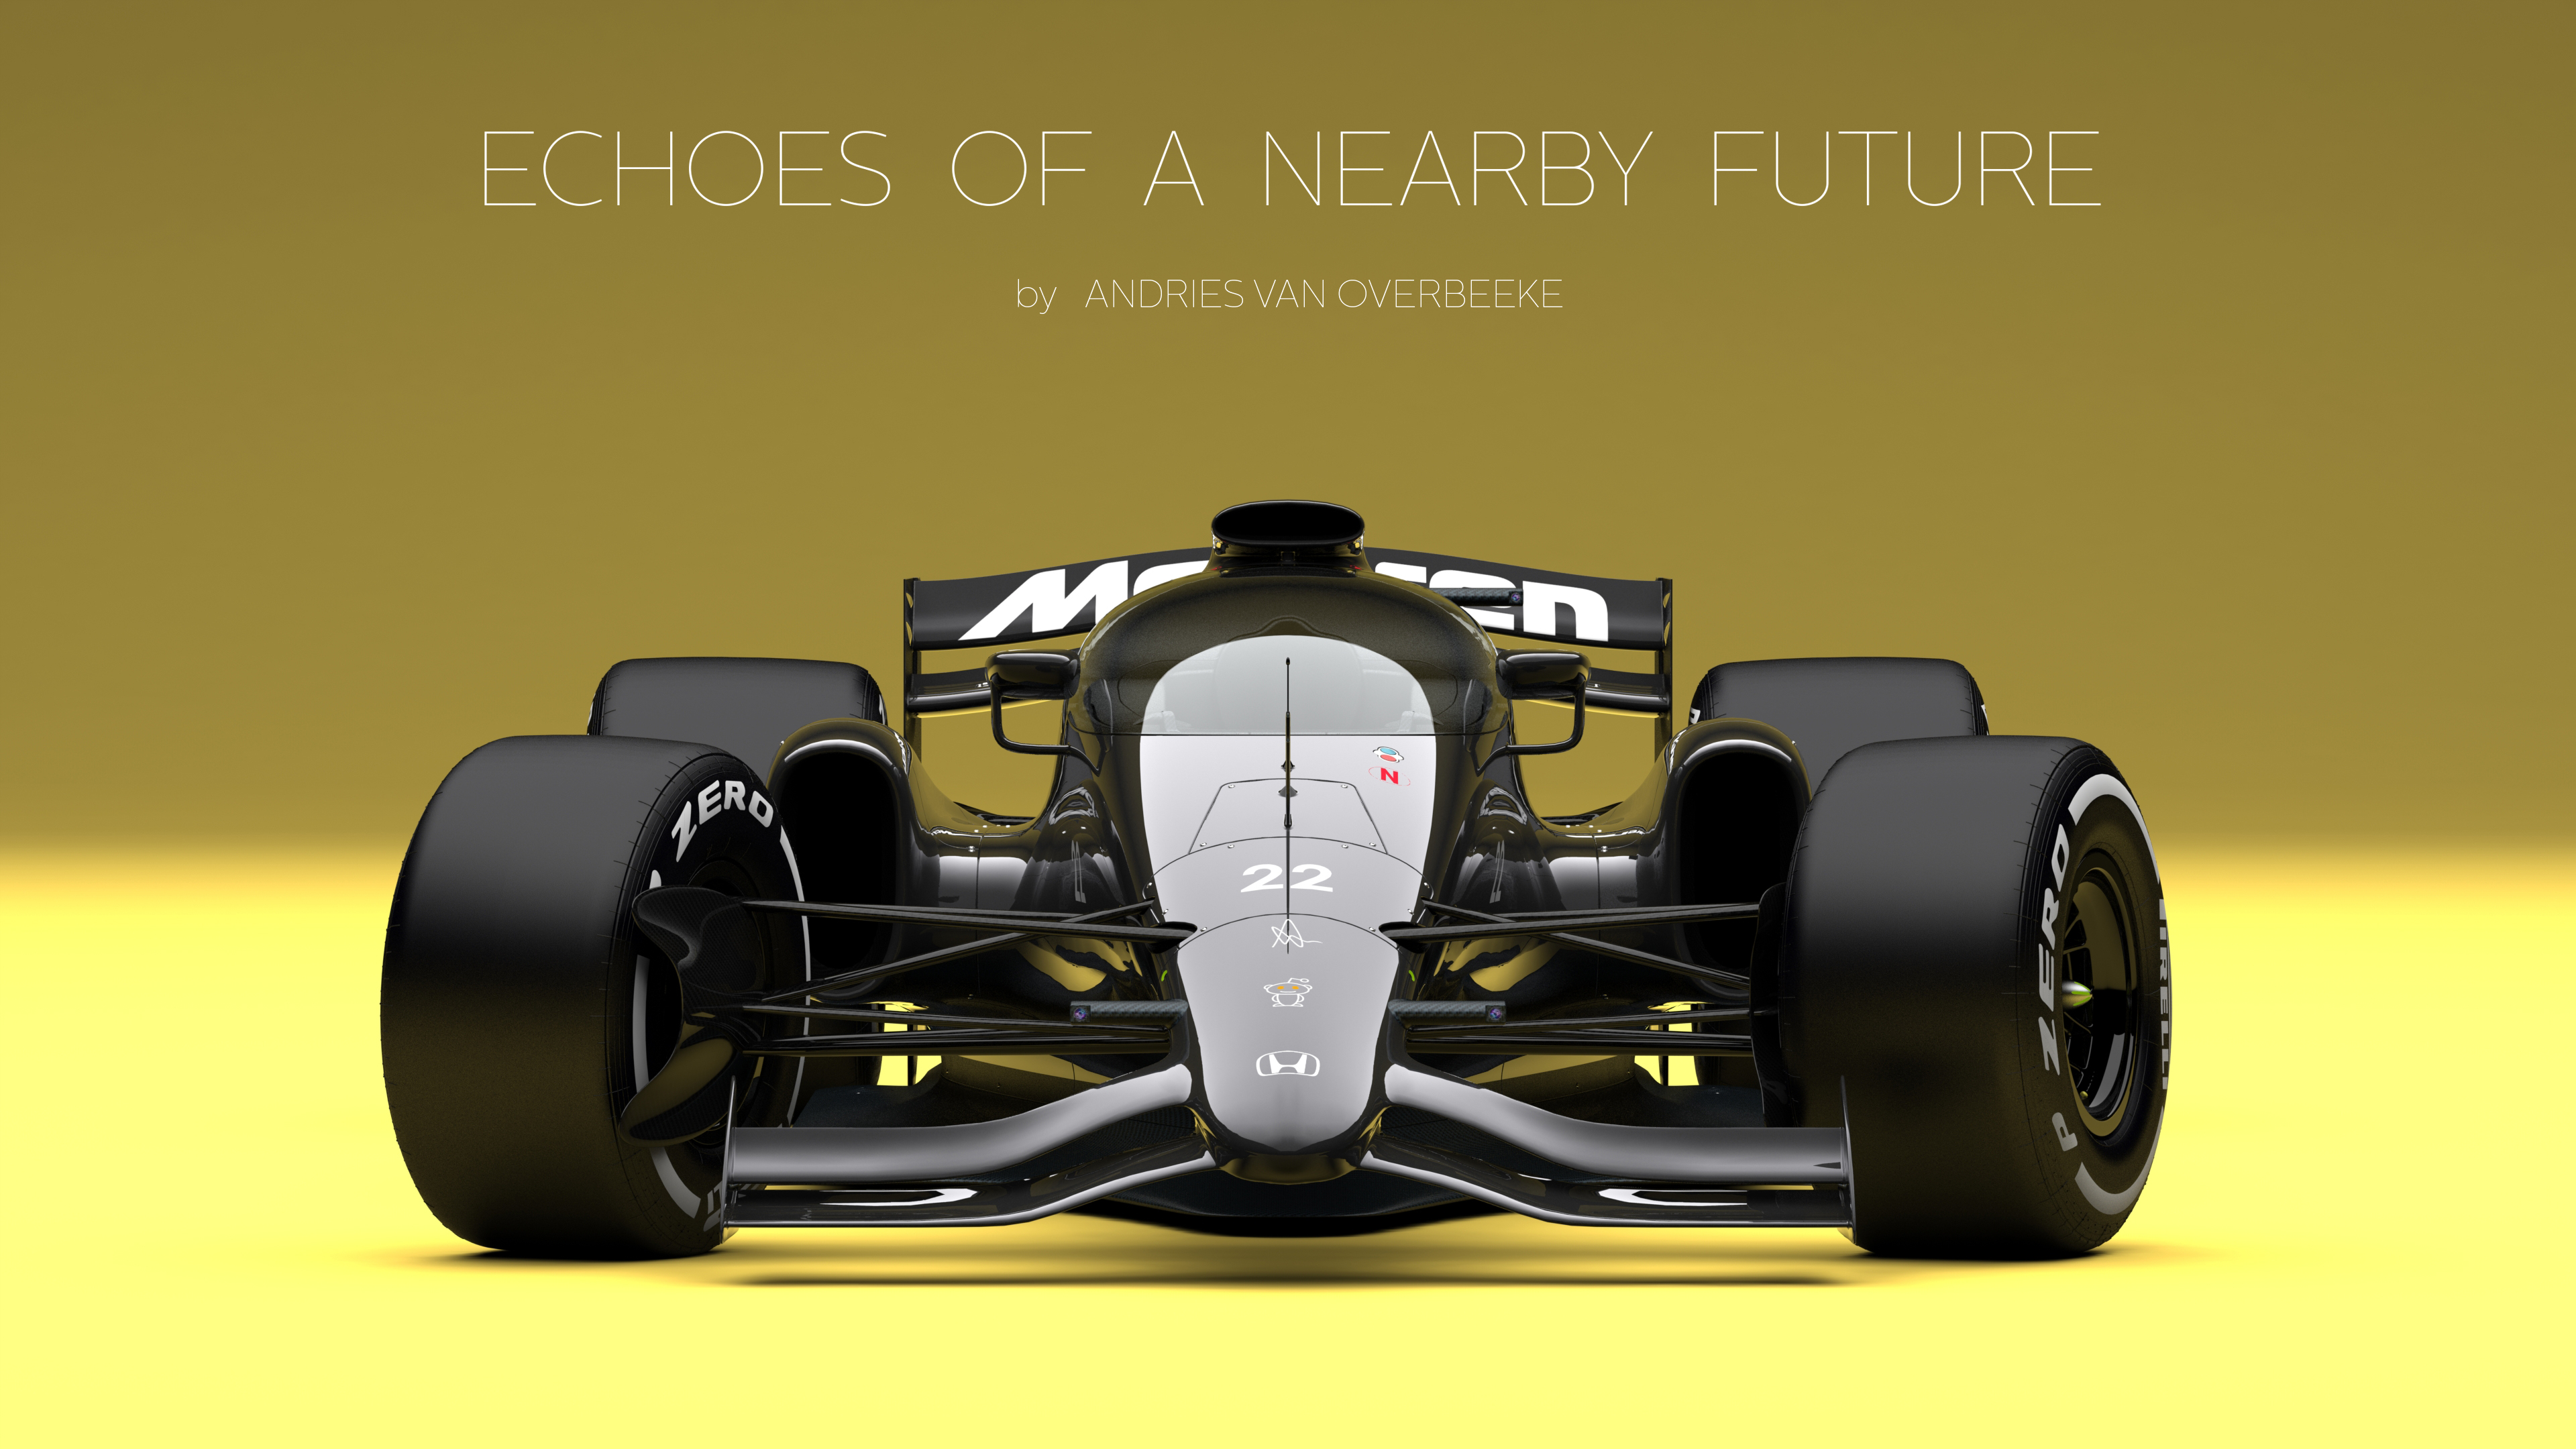 This Crazy F1 Concept Car Could Save Open Wheel Racing The Verge